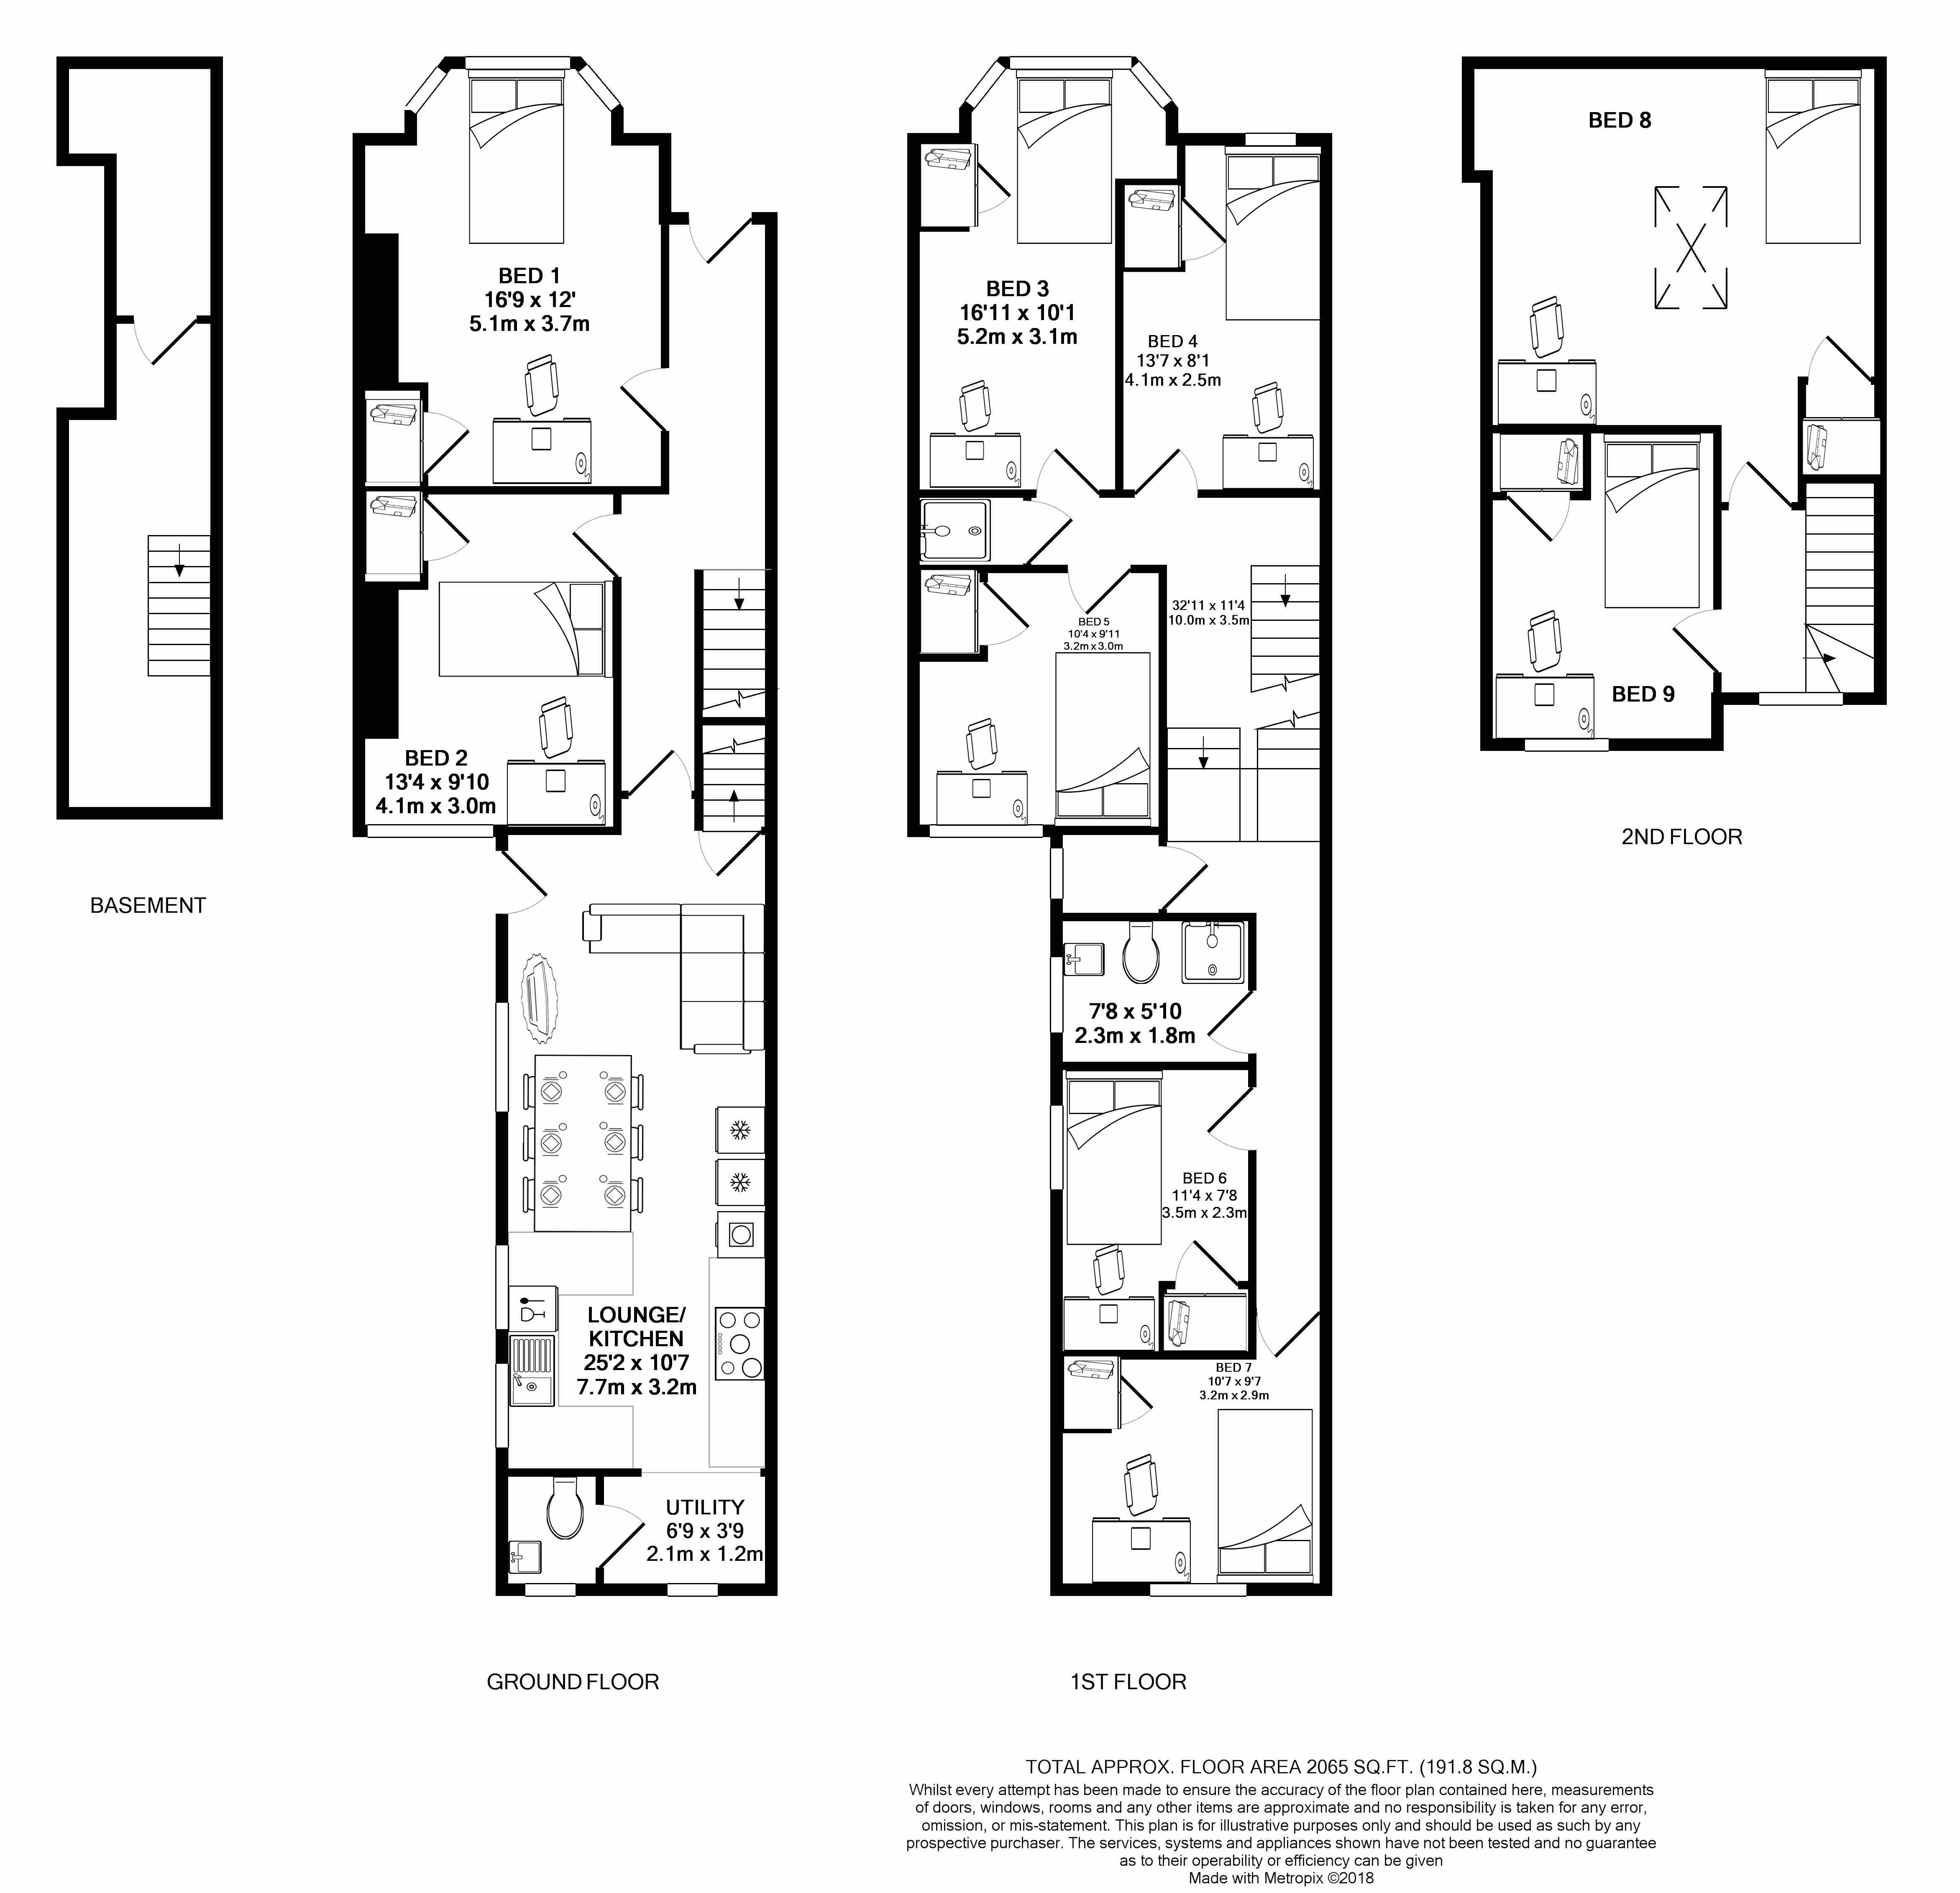 95 St Andrews Road - floorplans